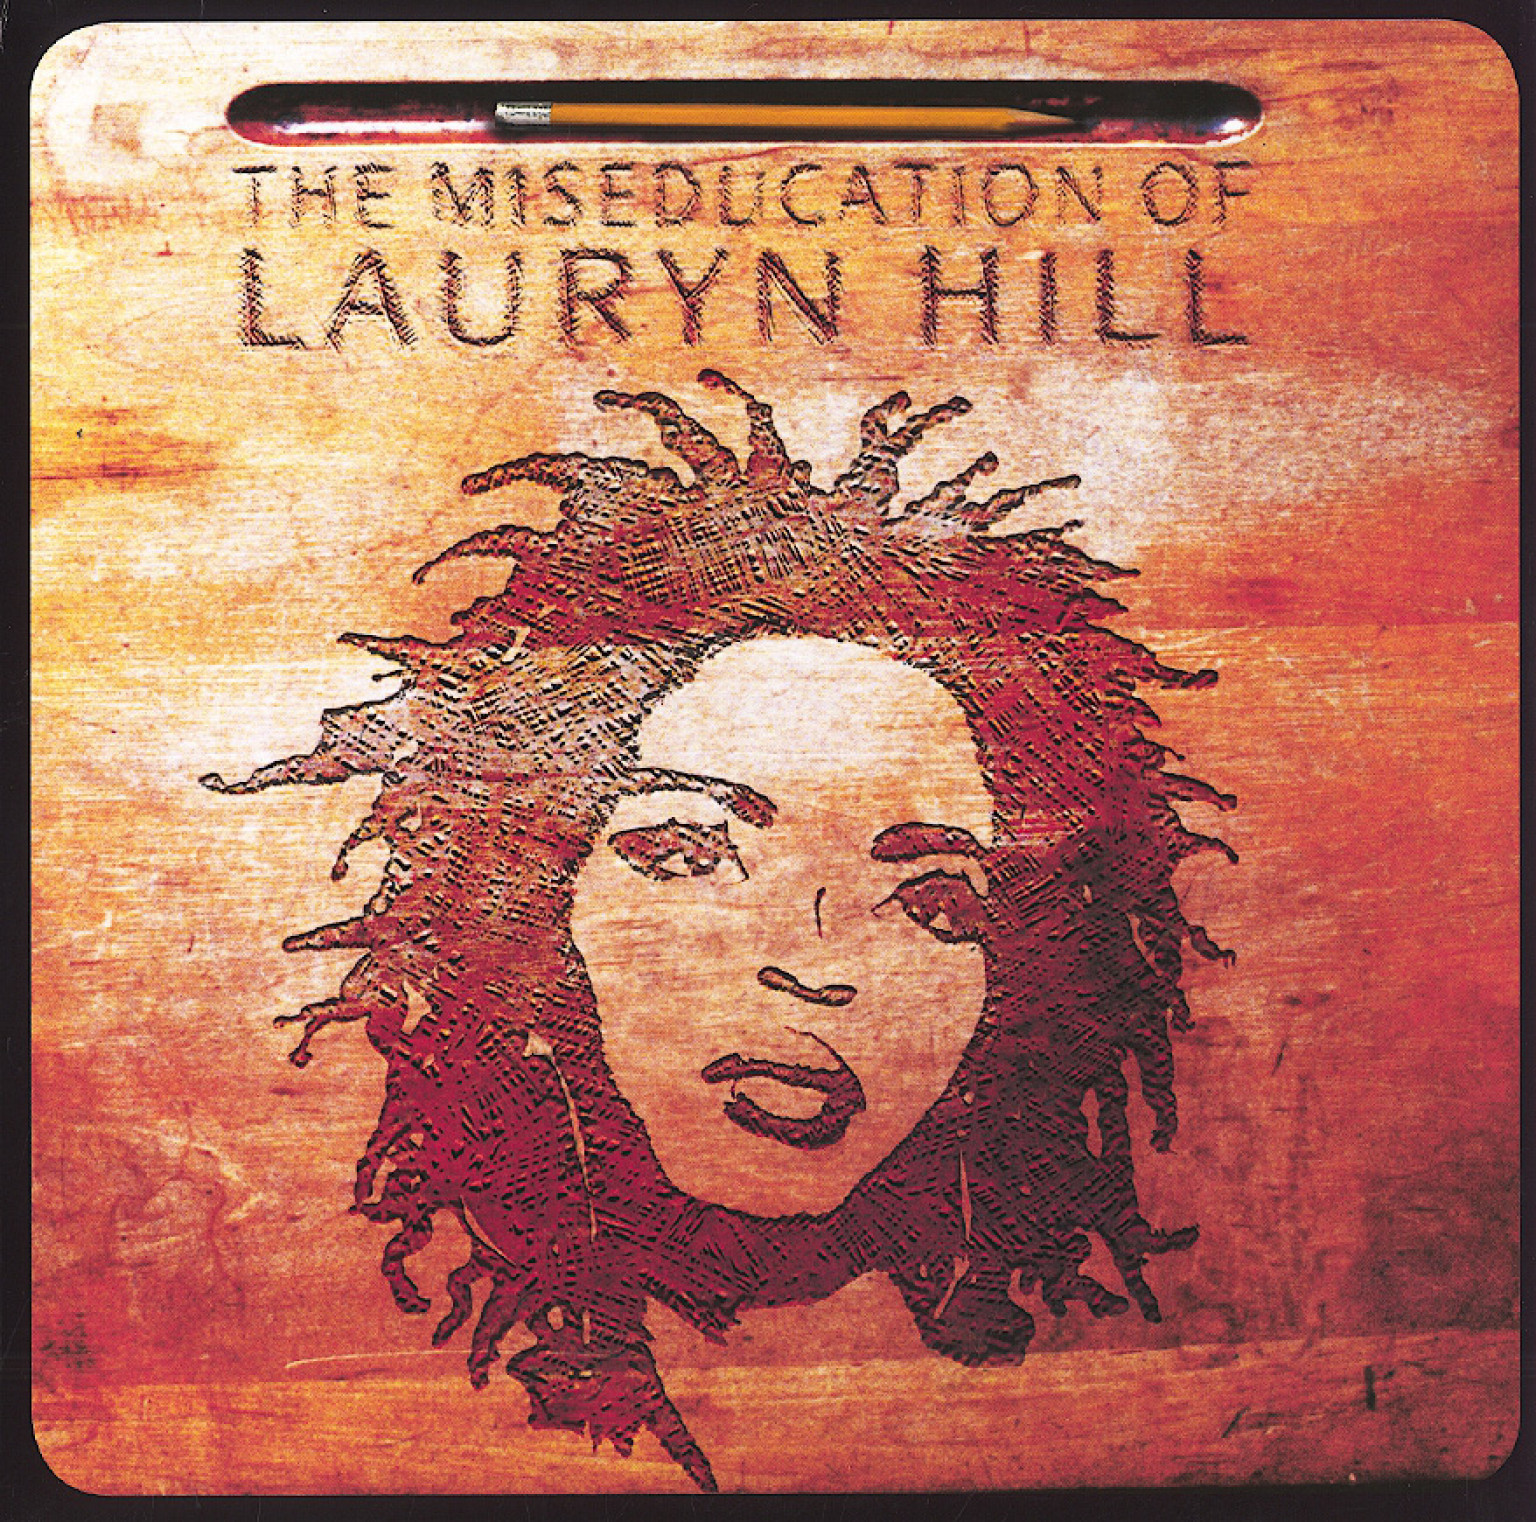 "#THROWBACK - LISTEN TO LAURYN HILL'S CLASSIC ALBUM ""THE MISEDUCATION OF LAURYN HILL"""